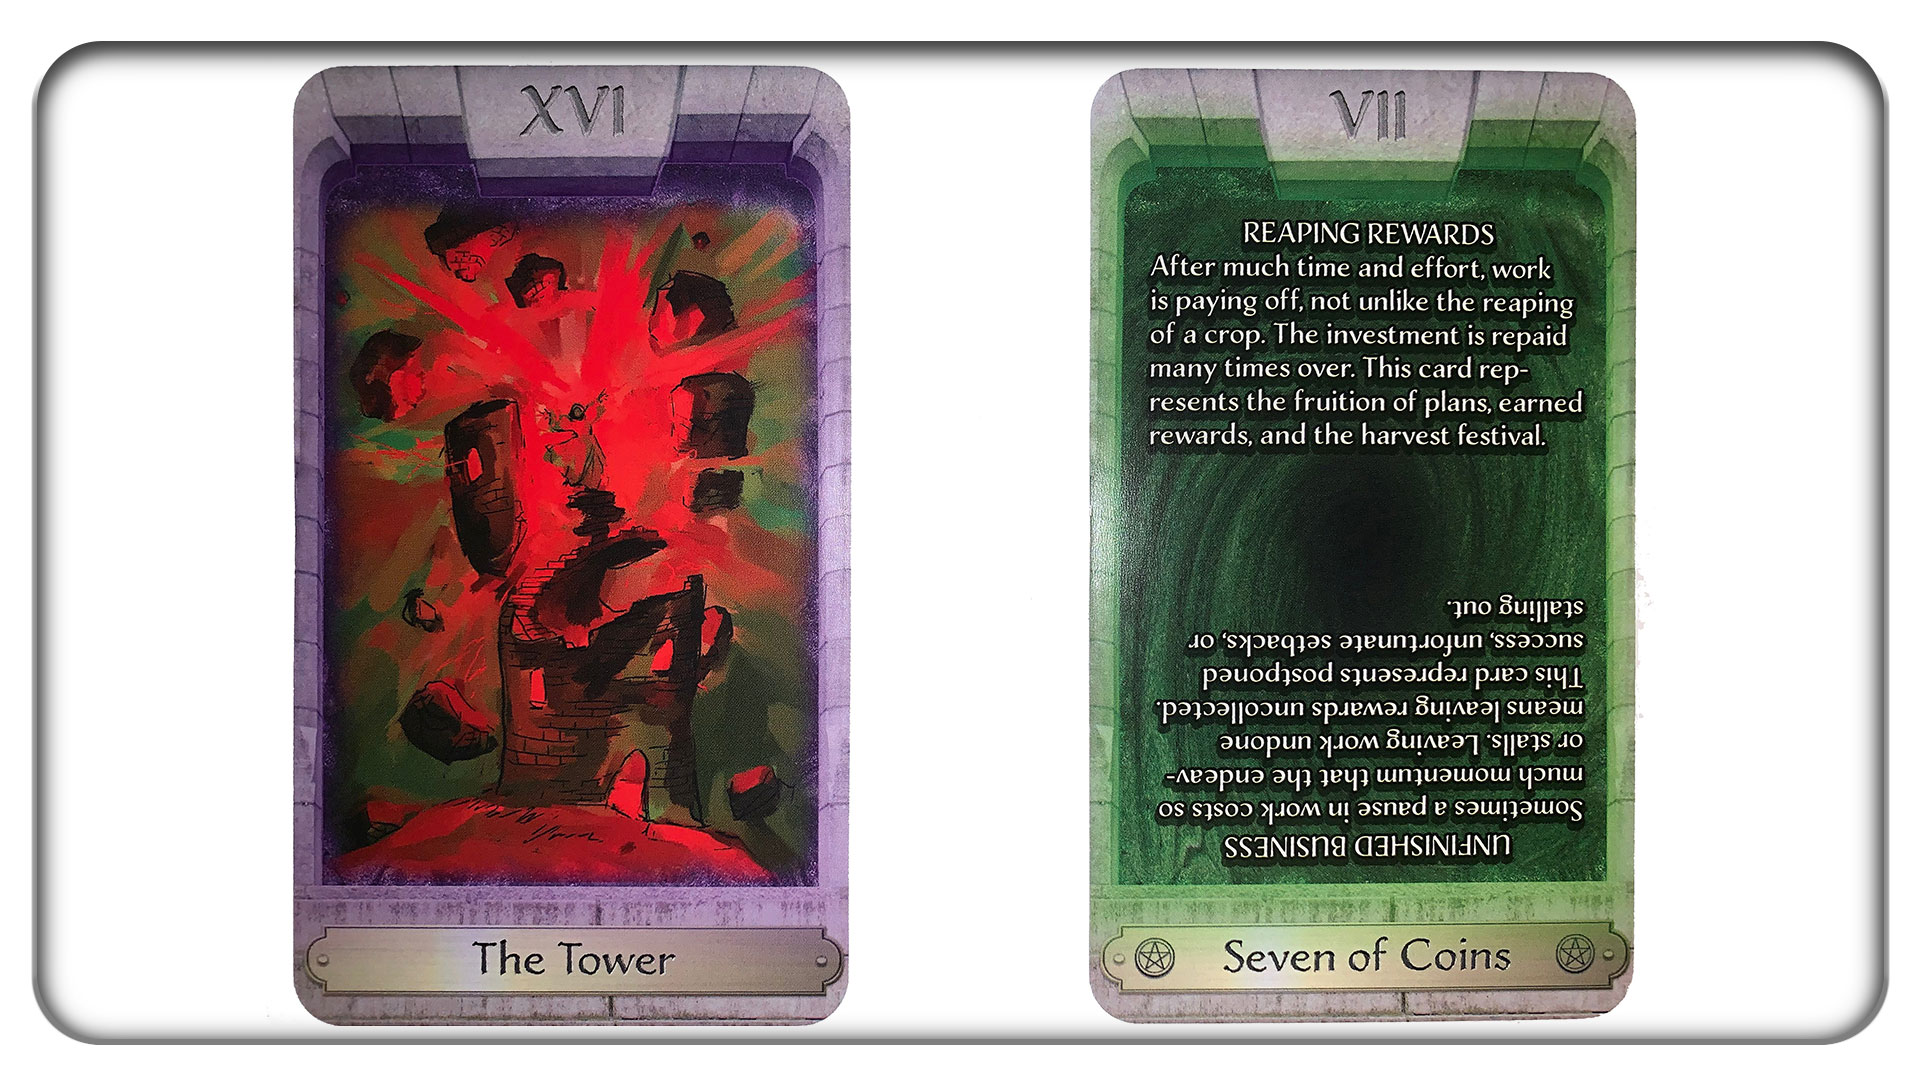 Left: One of the 22 fully-illustrated Major Arcana. Right: One of the 56 Minor Arcana, with explanatory text.